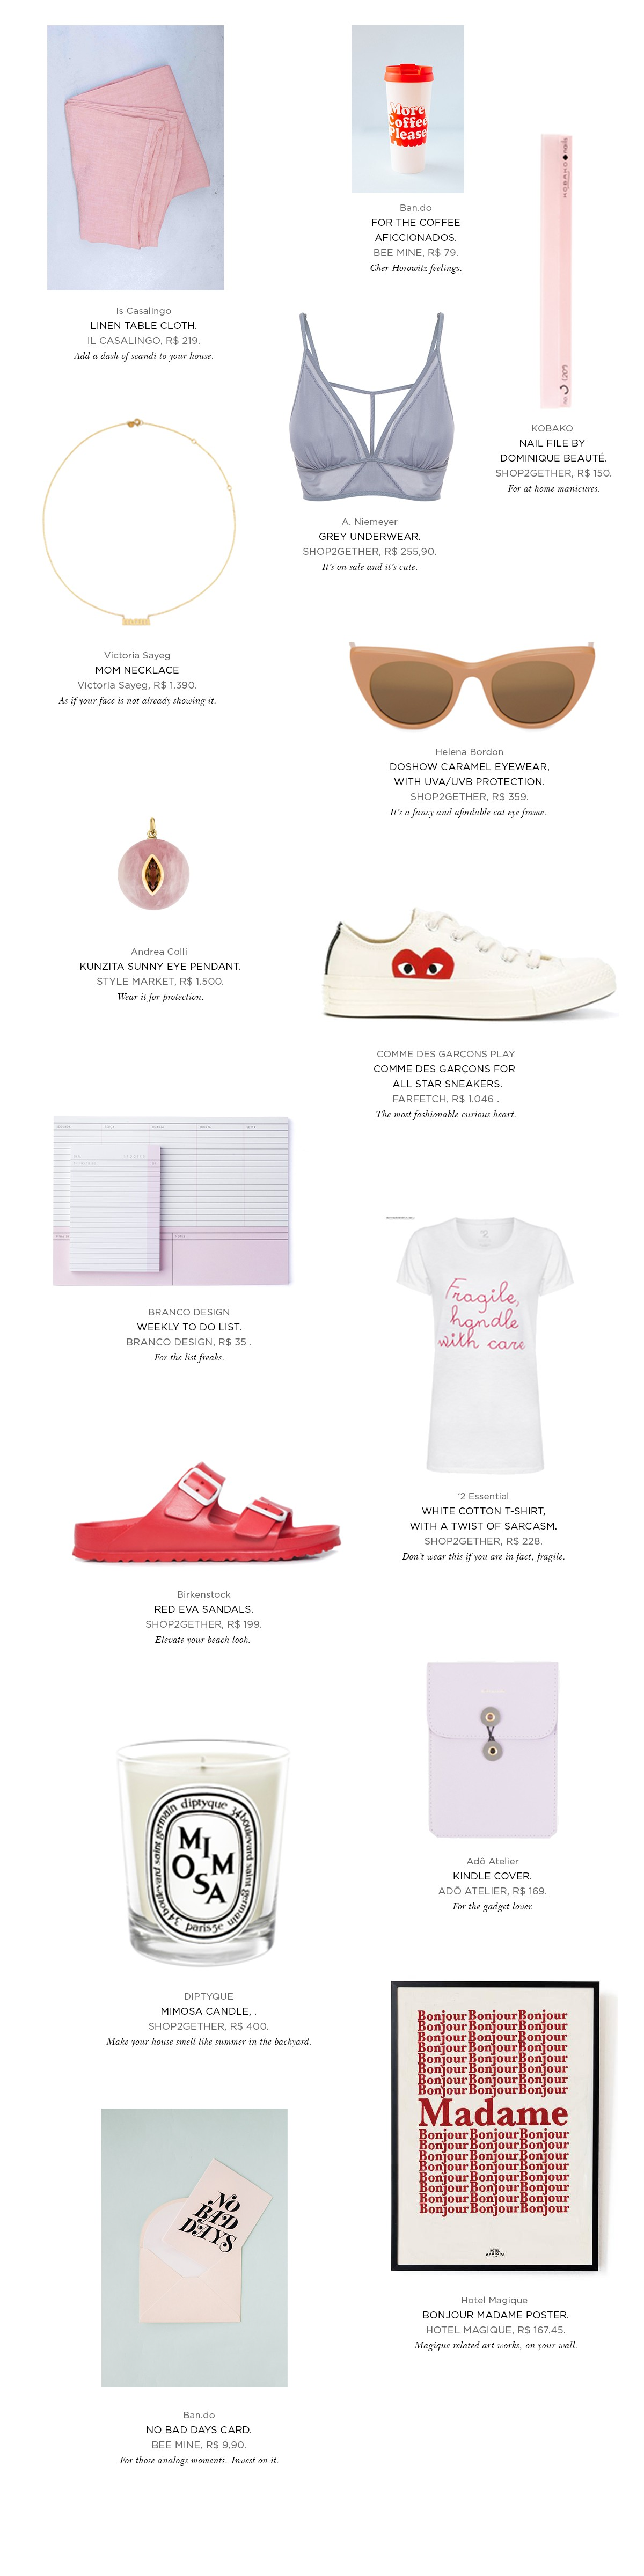 img?v=2 - The Lolla Valentine's Day Gift Guide